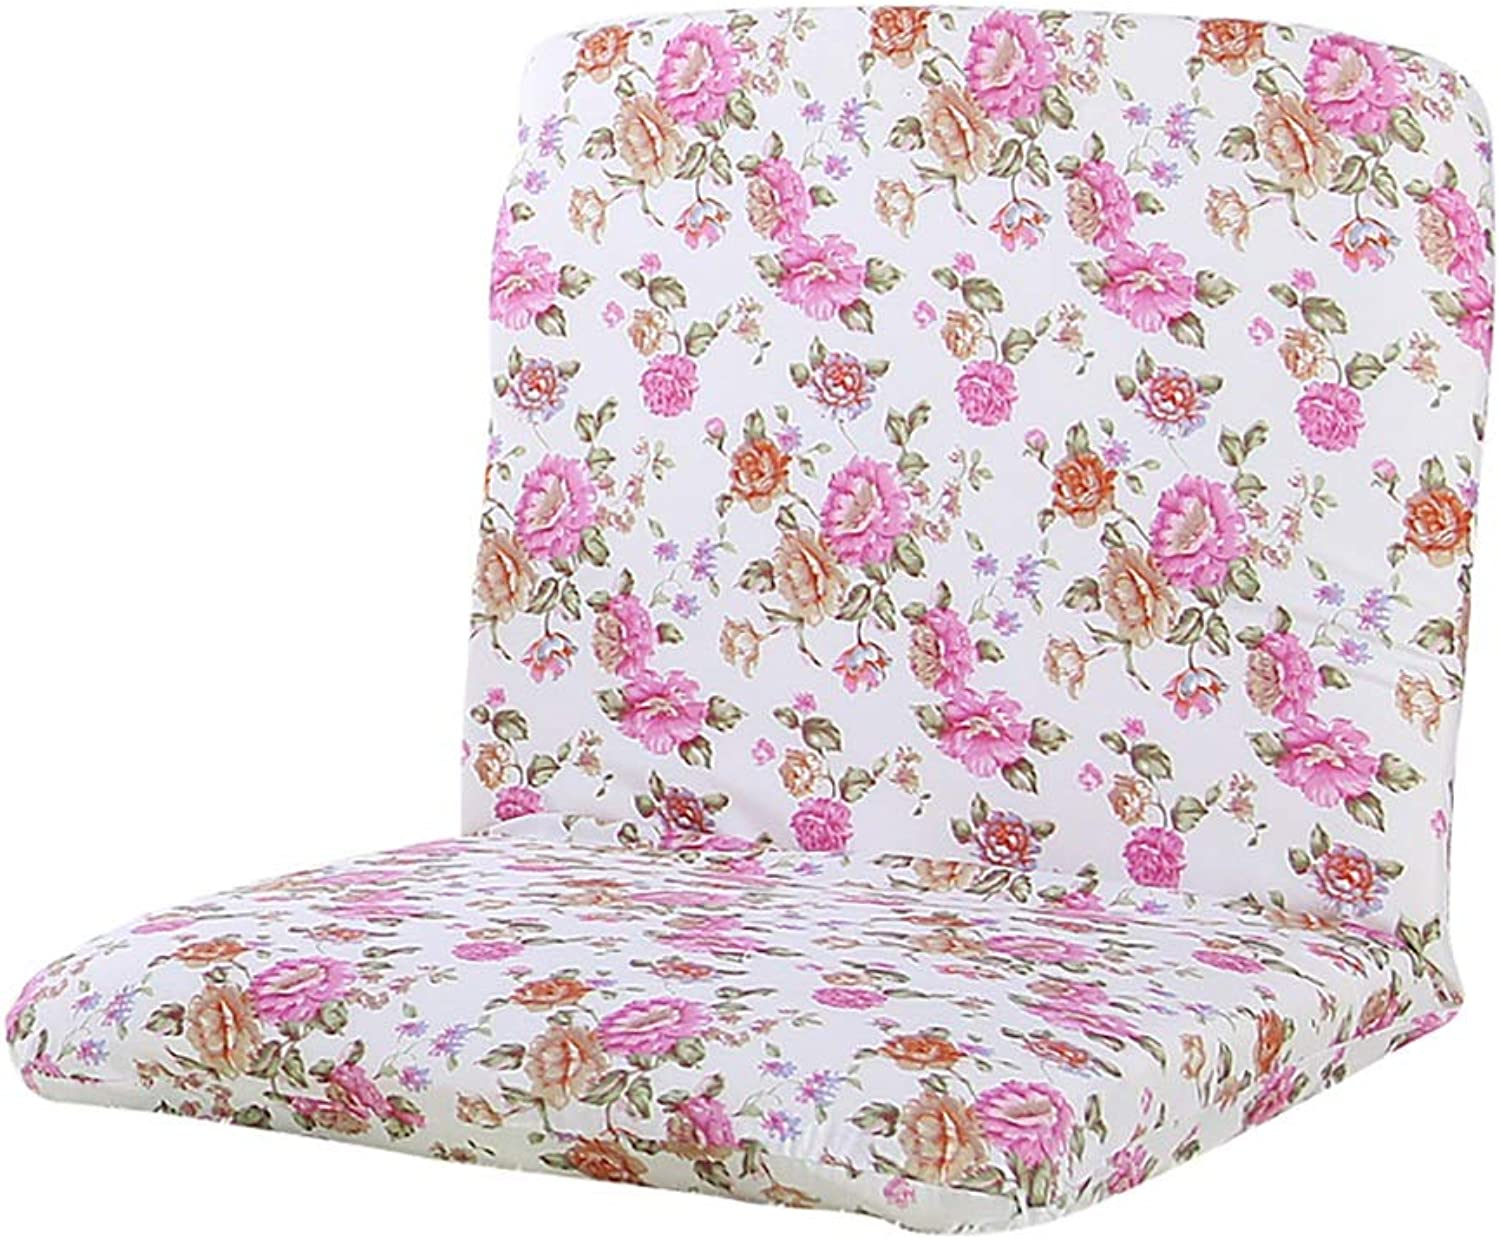 Adjustable Lazy Sofa Lounger Chair Foldable Floor Bay Window Single Sofa Couch Cushion Seat Washable (color   Pink)